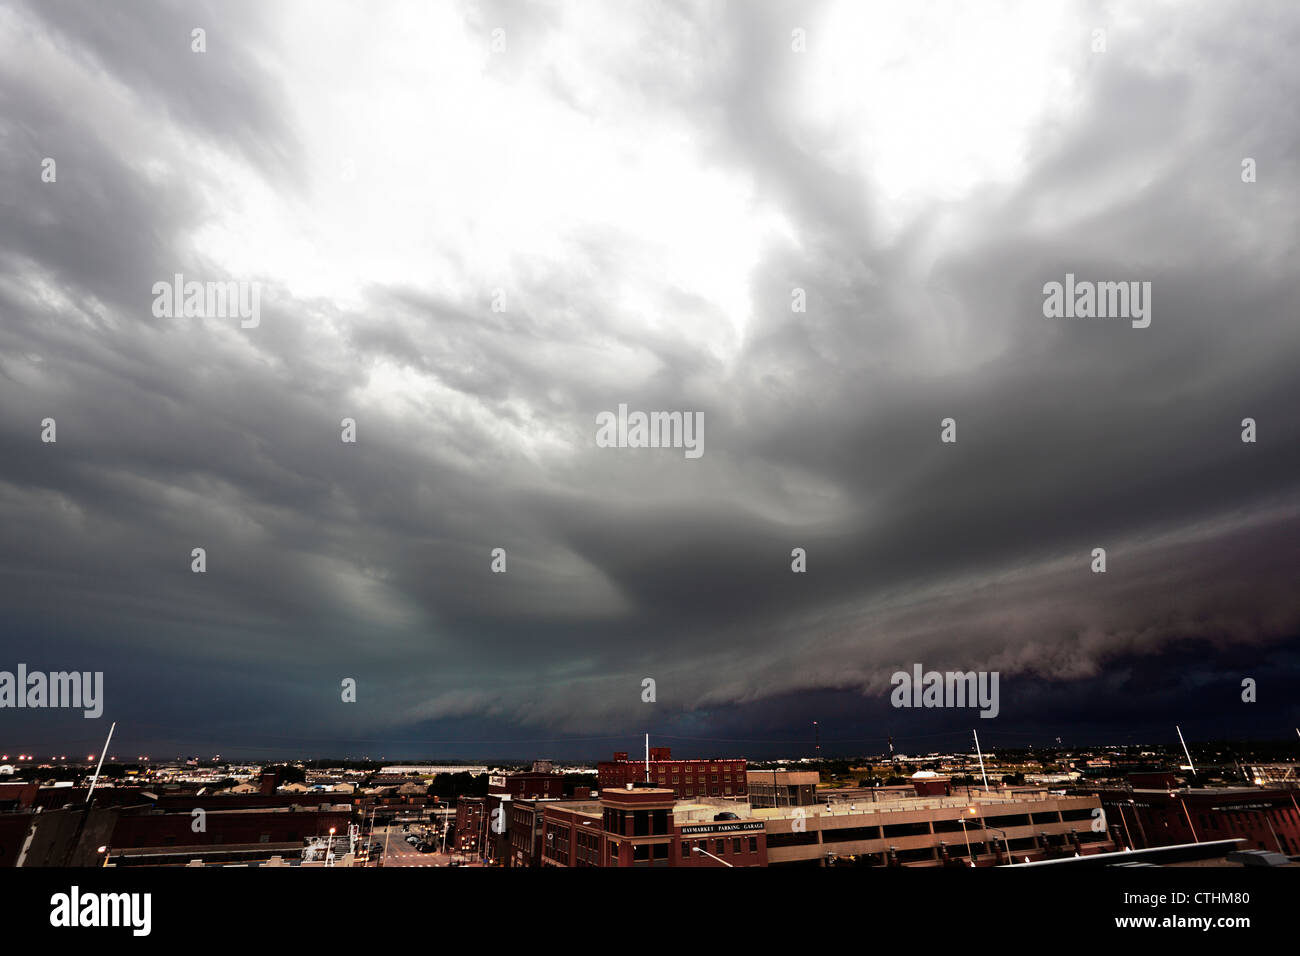 A squall line thunderstorm flies over a city, with distinct outflow areas visible on top. - Stock Image